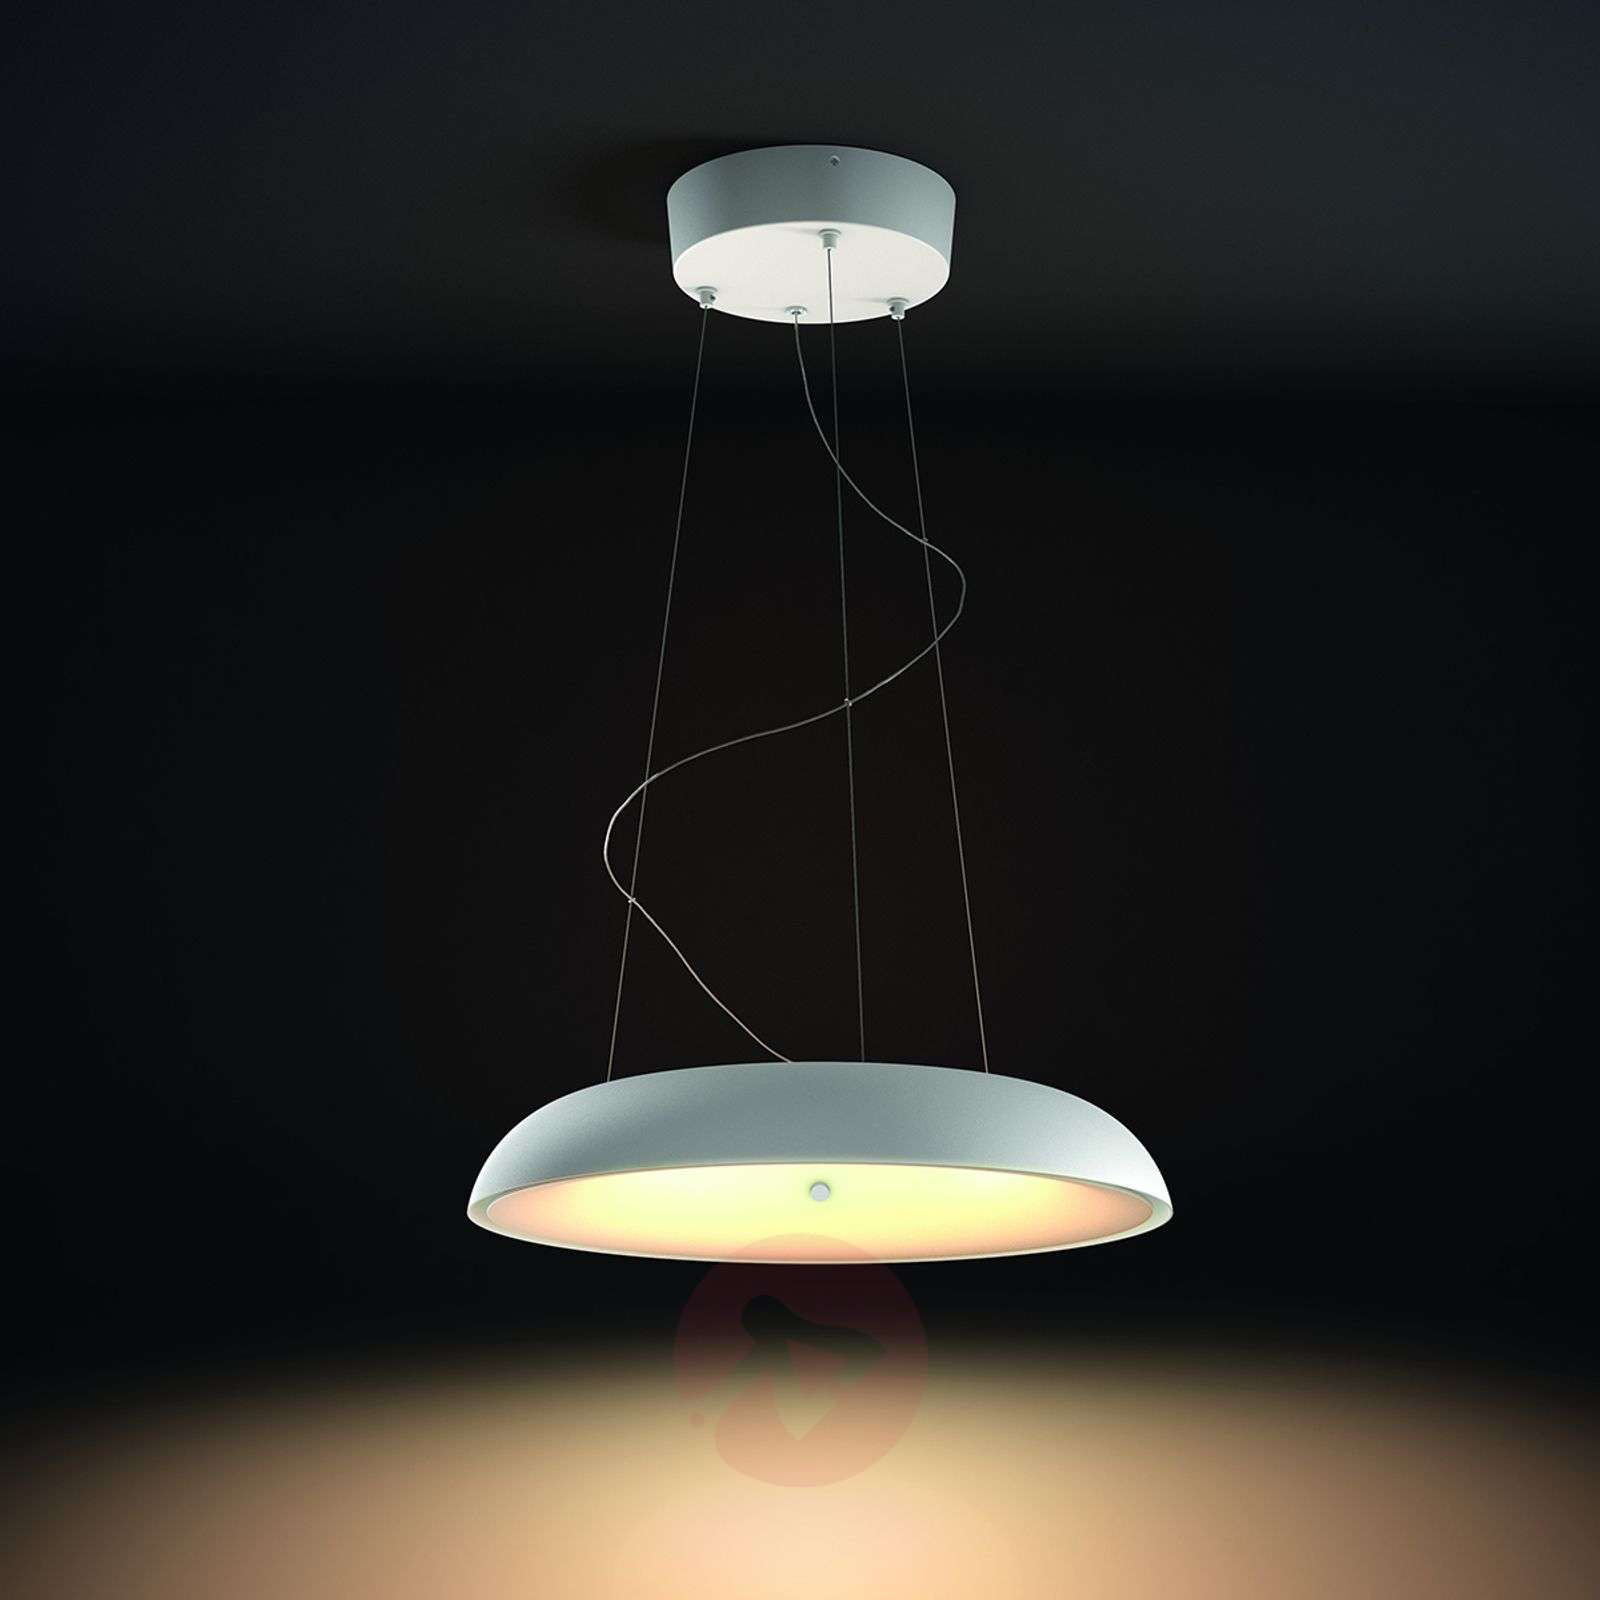 Philips Hue LED hanging light Amaze in white Lights.co.uk